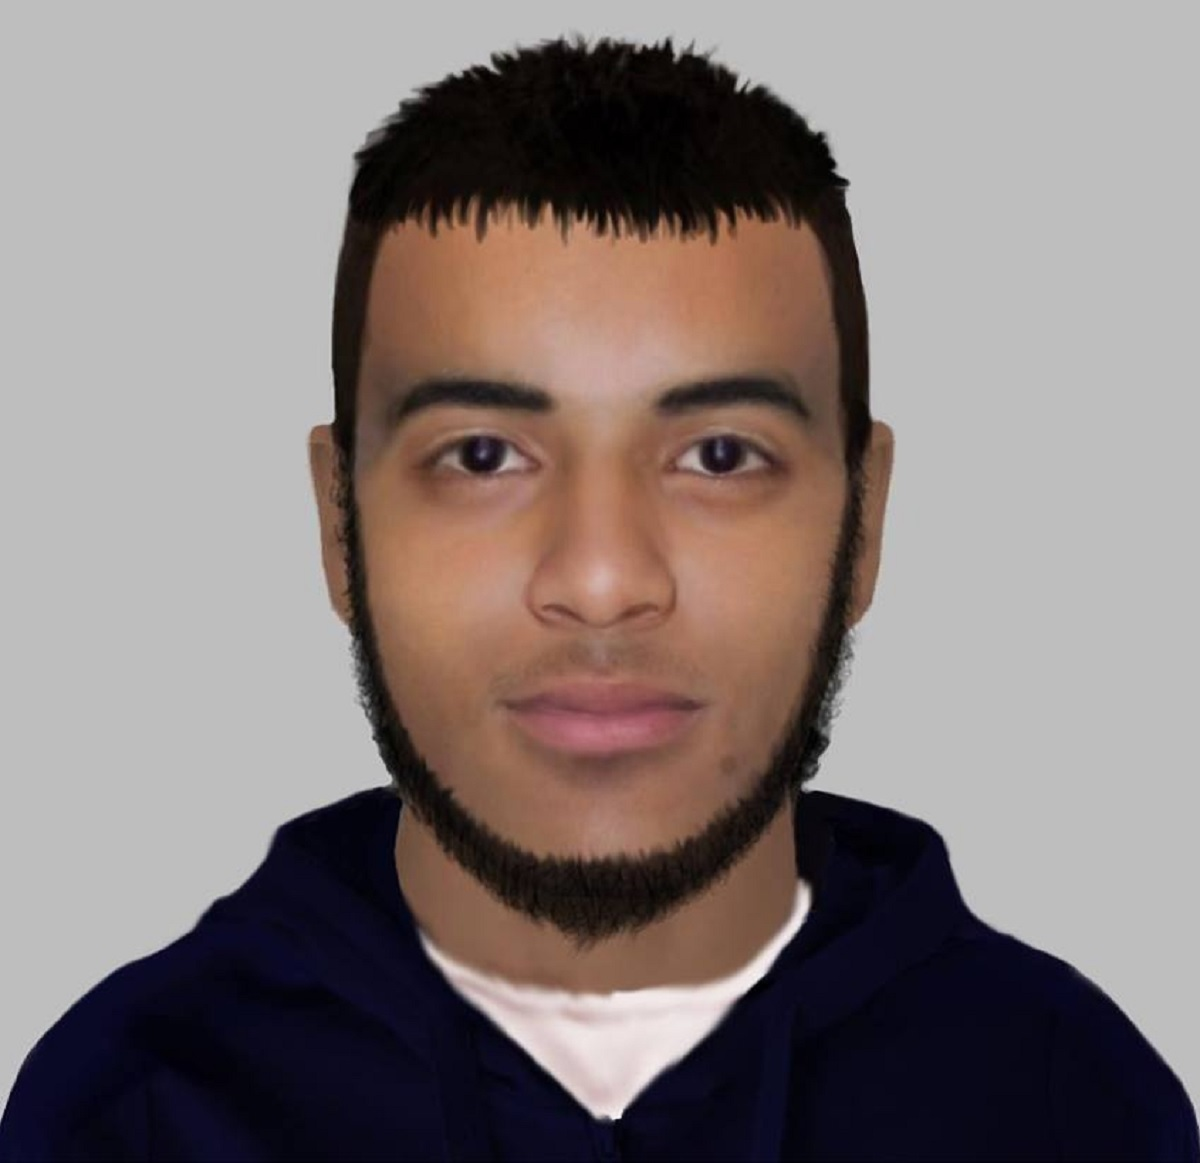 An e-fit released of a man police want to talk to after an indecent exposure in Shipley